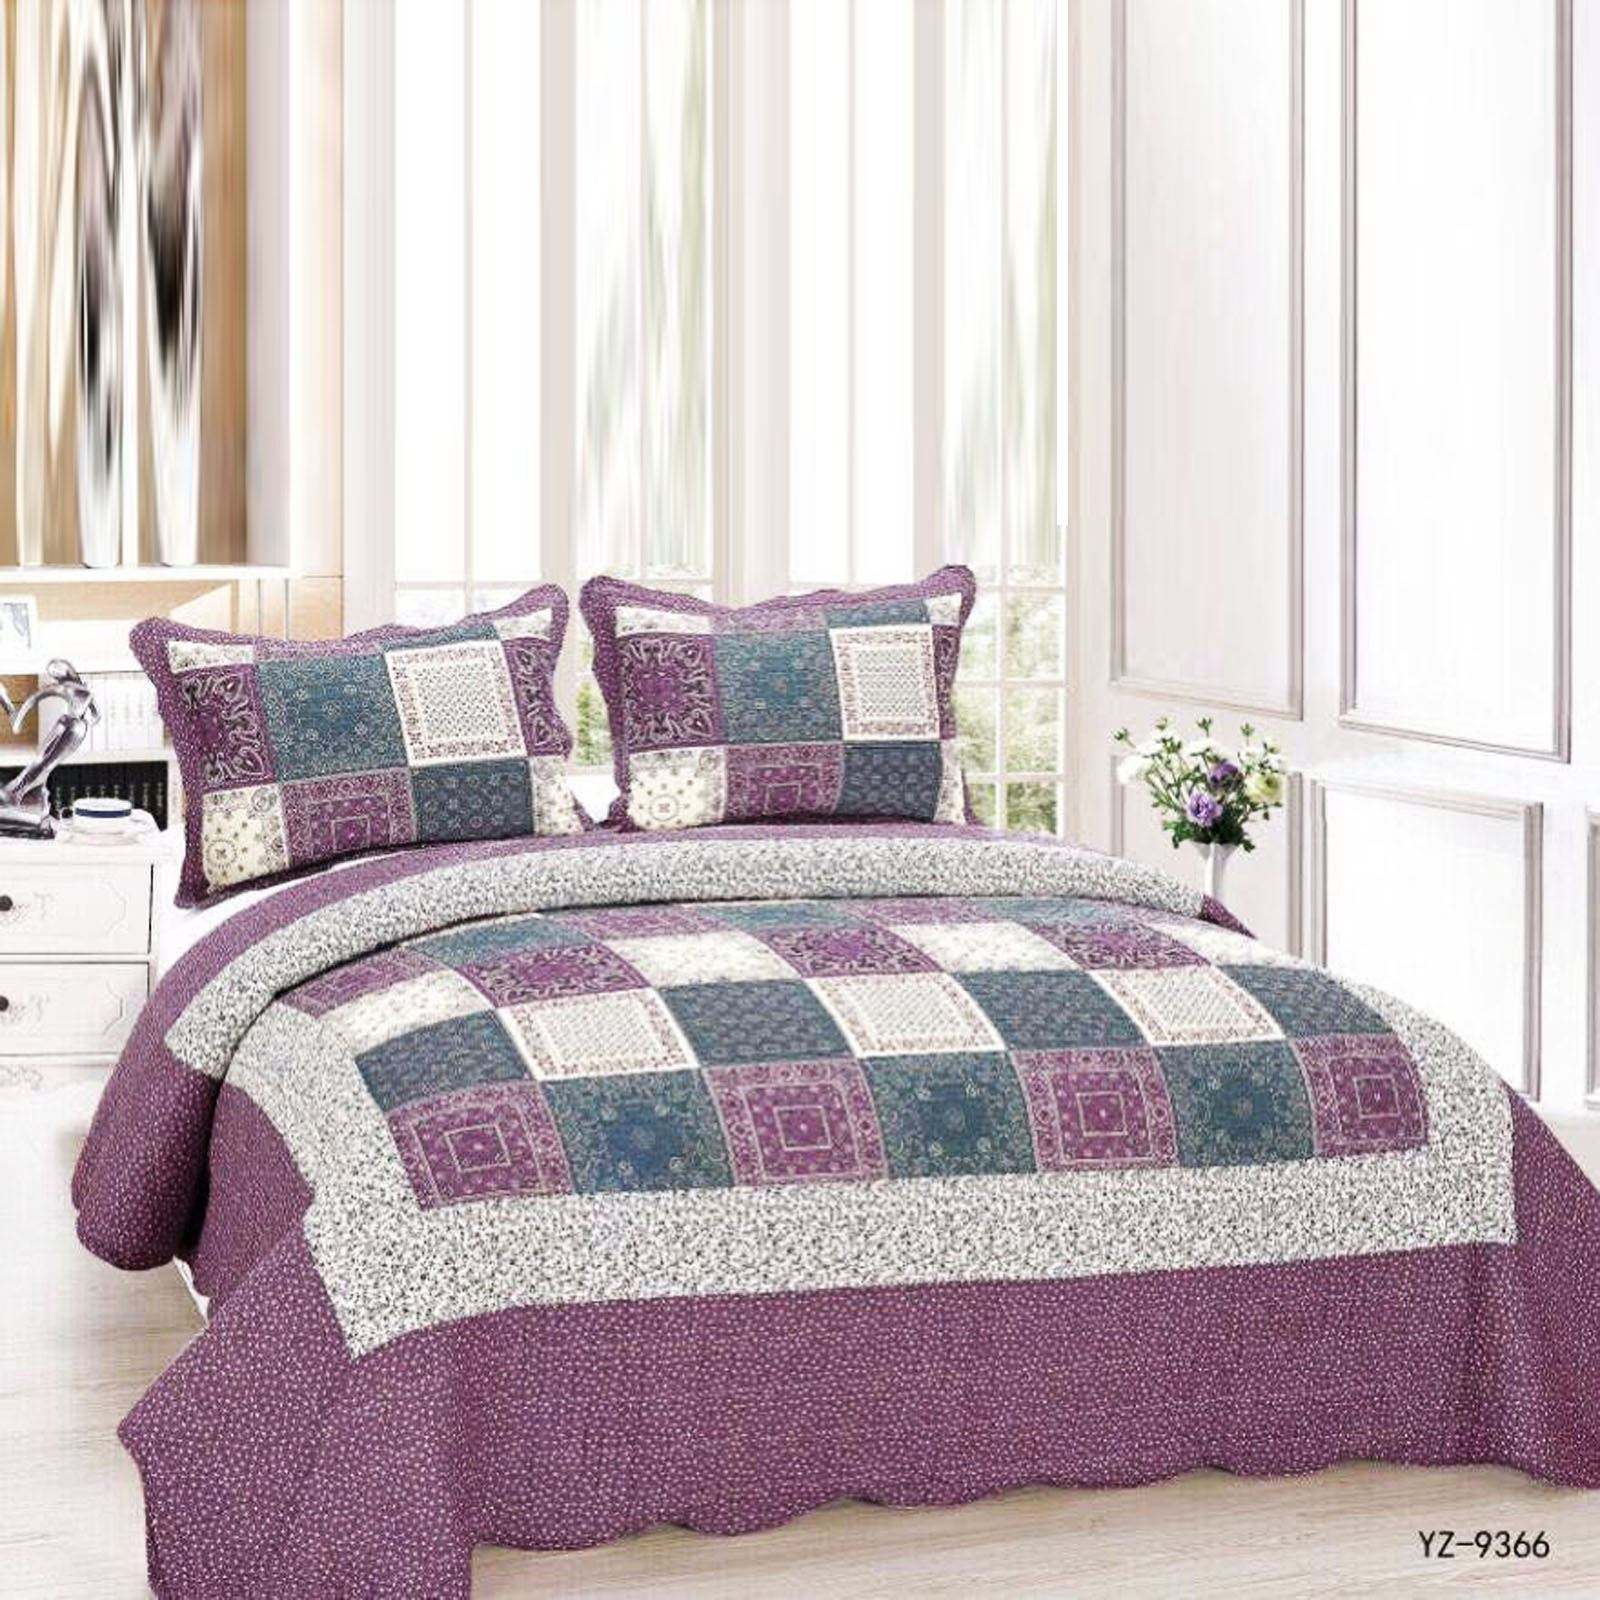 new bedspread pillow cover floral throw jacquard quilted patchwork set honeycomb ebay. Black Bedroom Furniture Sets. Home Design Ideas